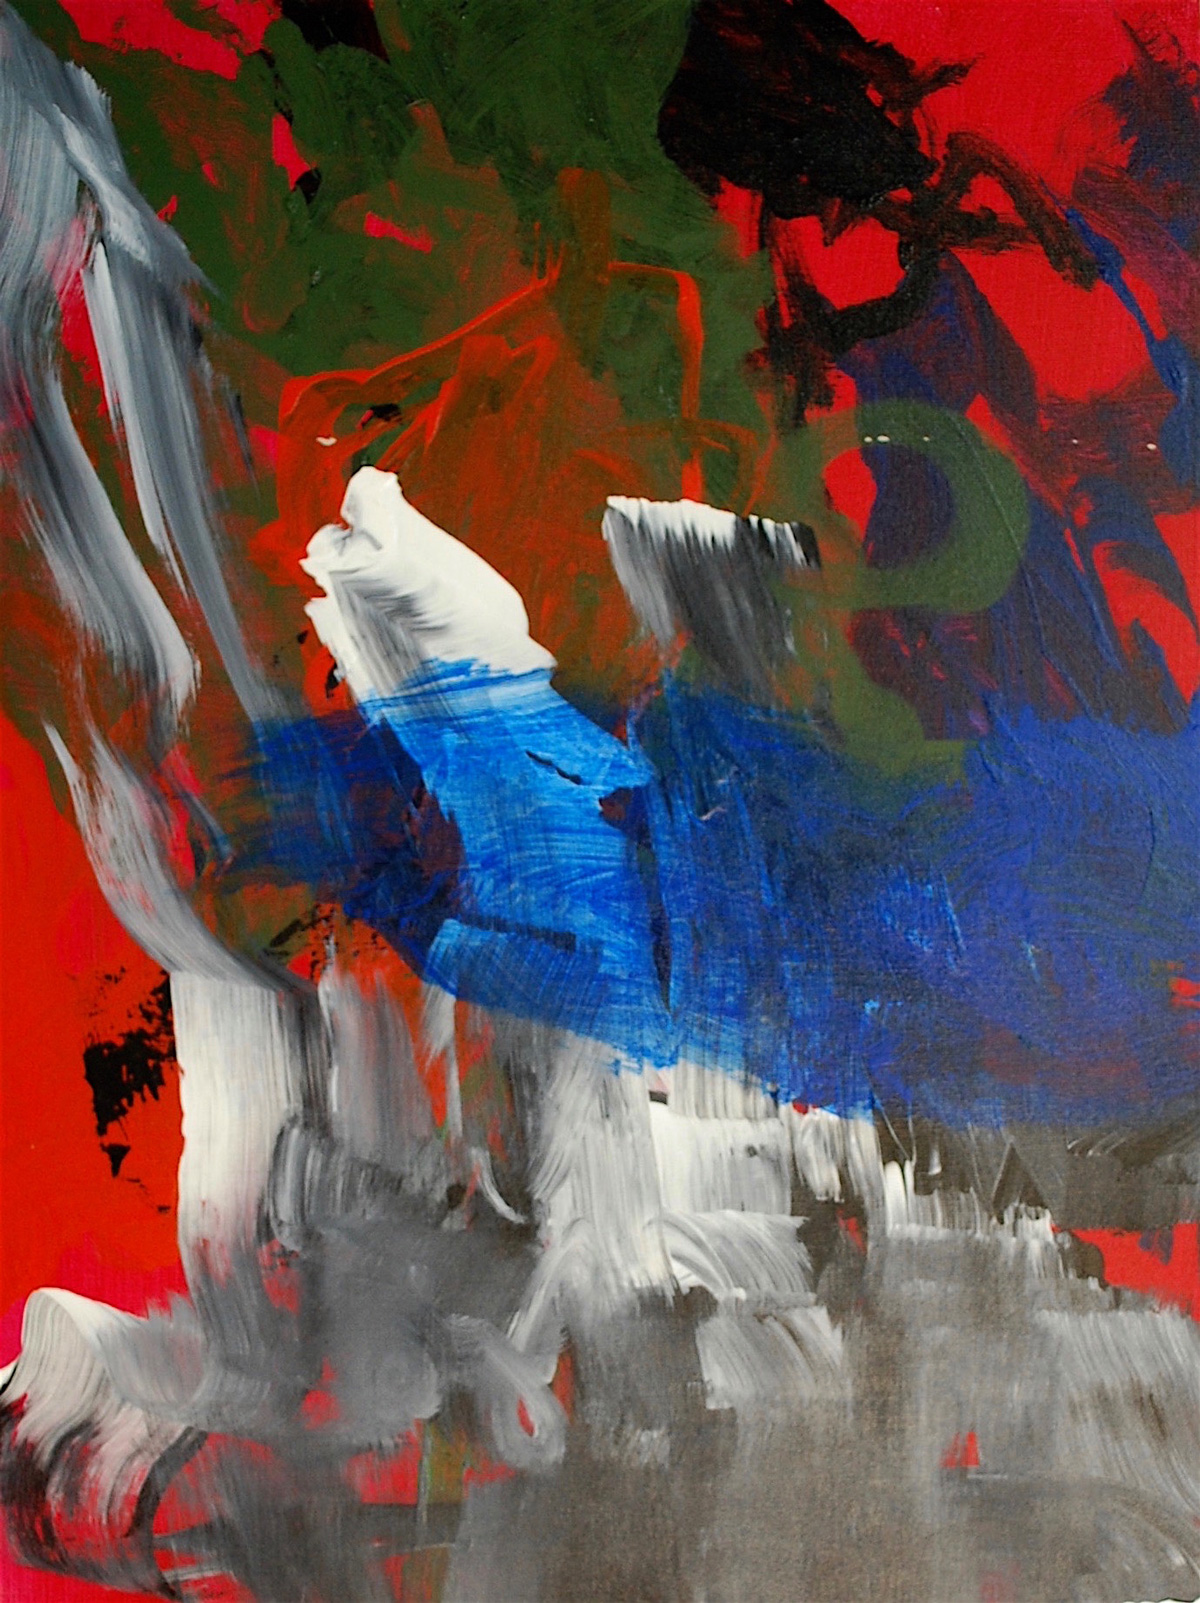 Painting: Large grey, white, blue, green, and black strokes on a red background.